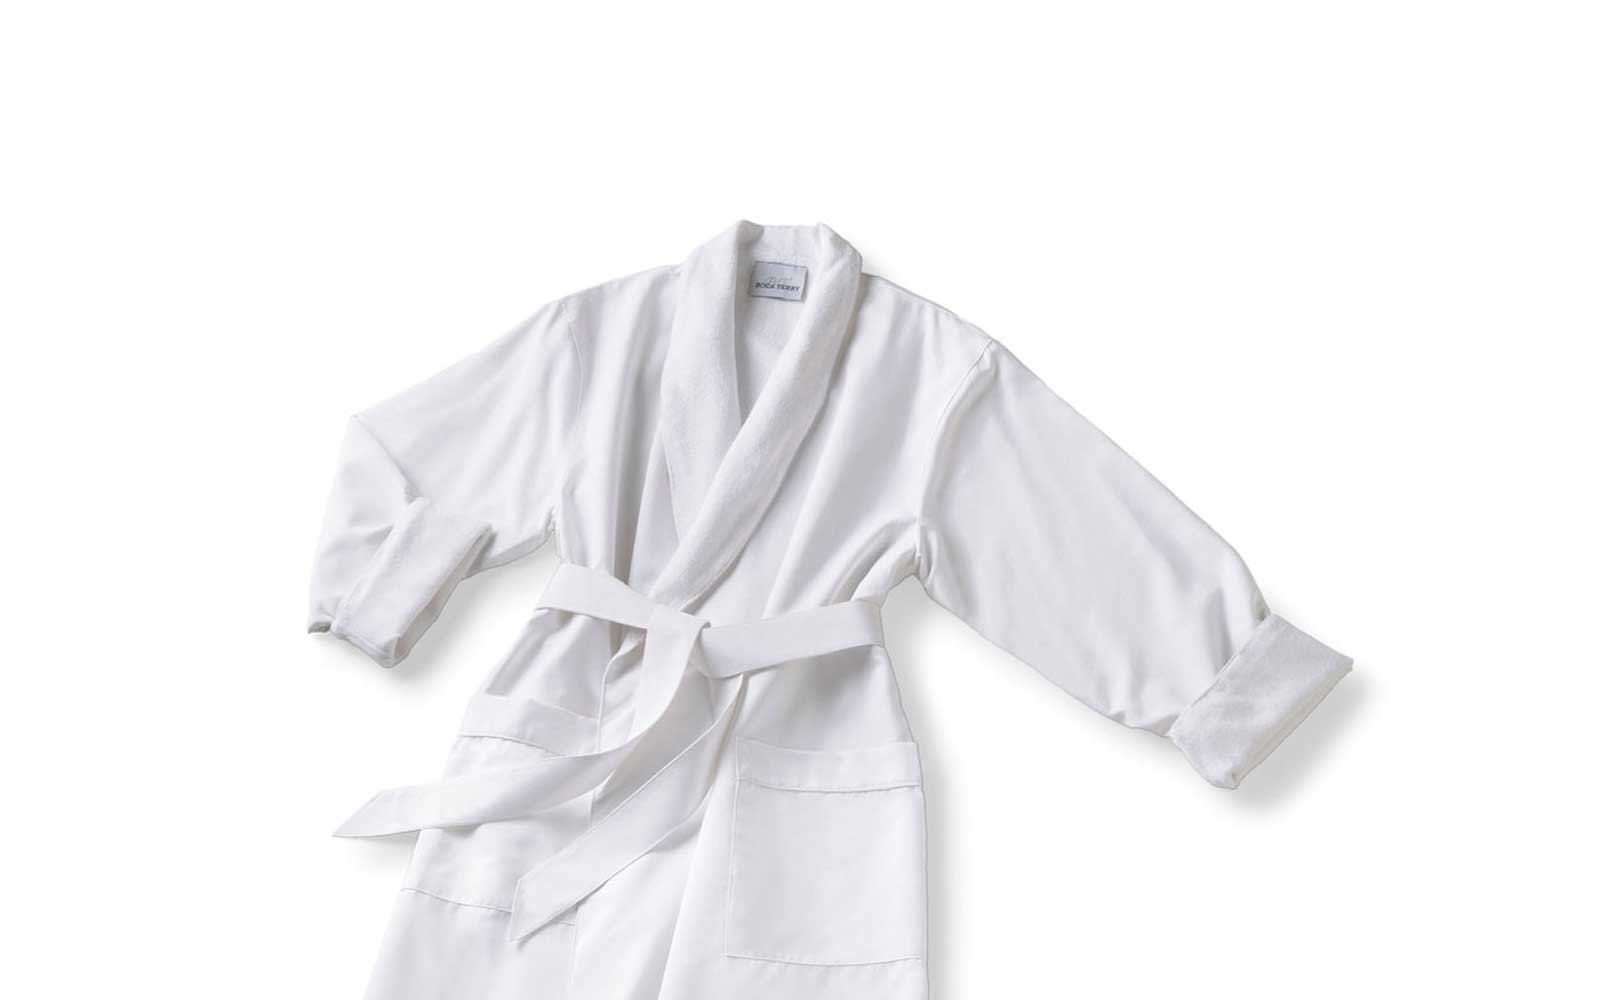 703f1820a4 14 Luxury Hotel-quality Bathrobes You Can Buy Online